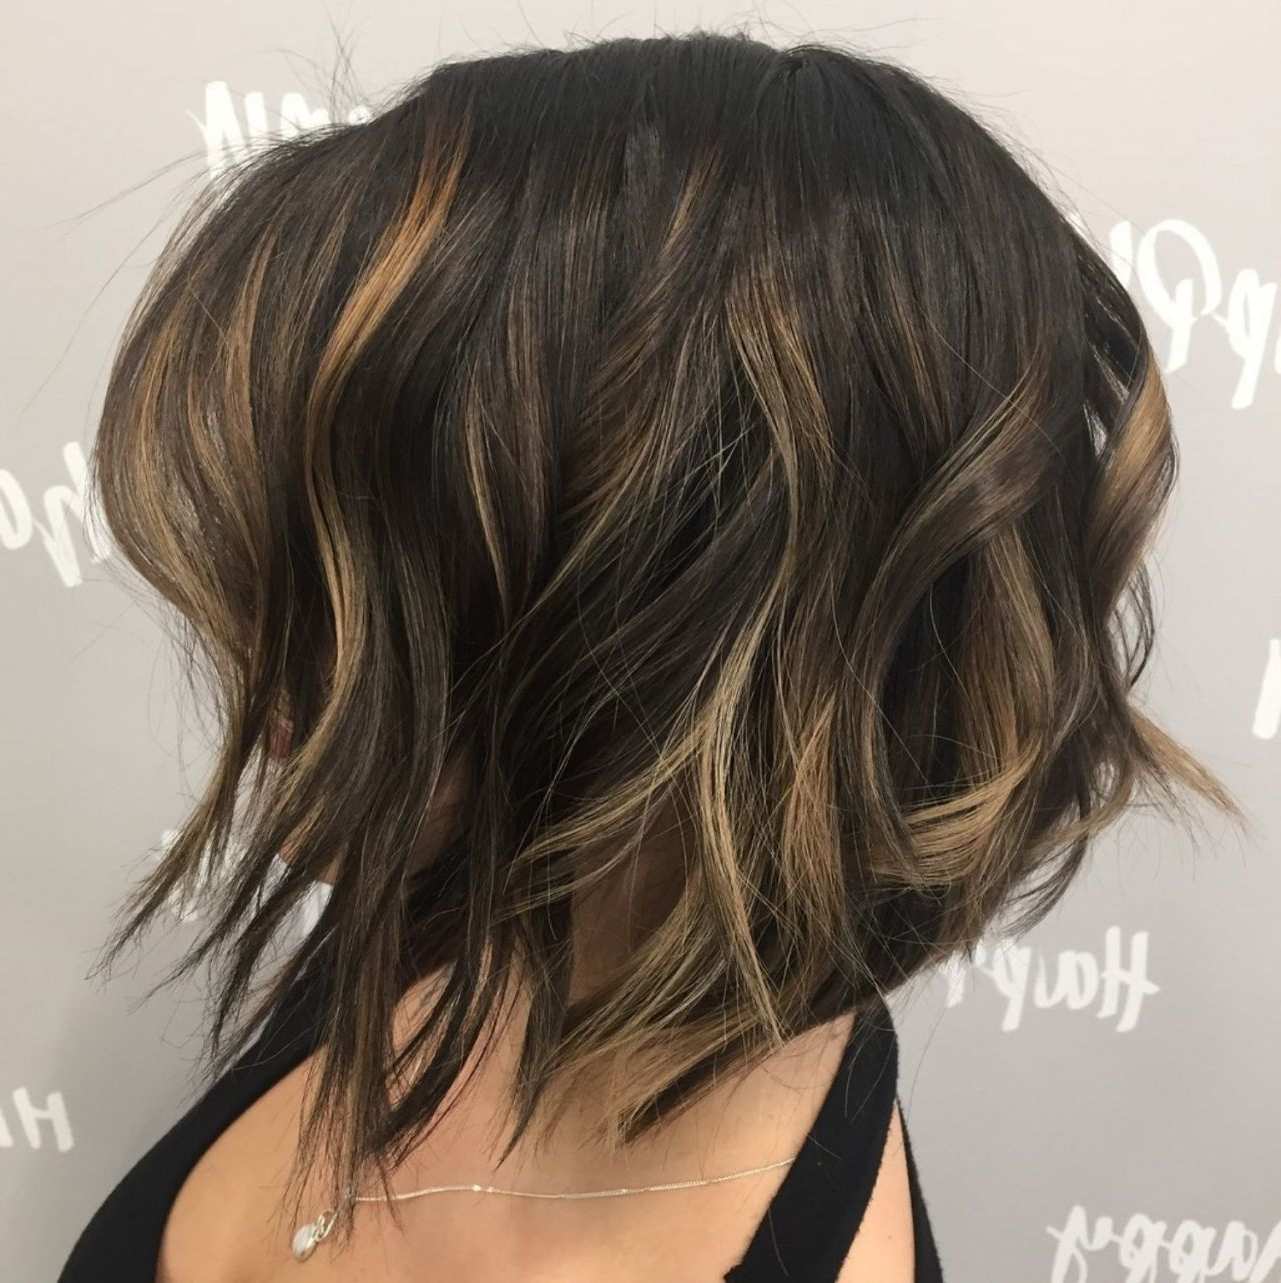 60 Messy Bob Hairstyles For Your Trendy Casual Looks   Hair Pertaining To Angled Brunette Bob Hairstyles With Messy Curls (View 9 of 25)